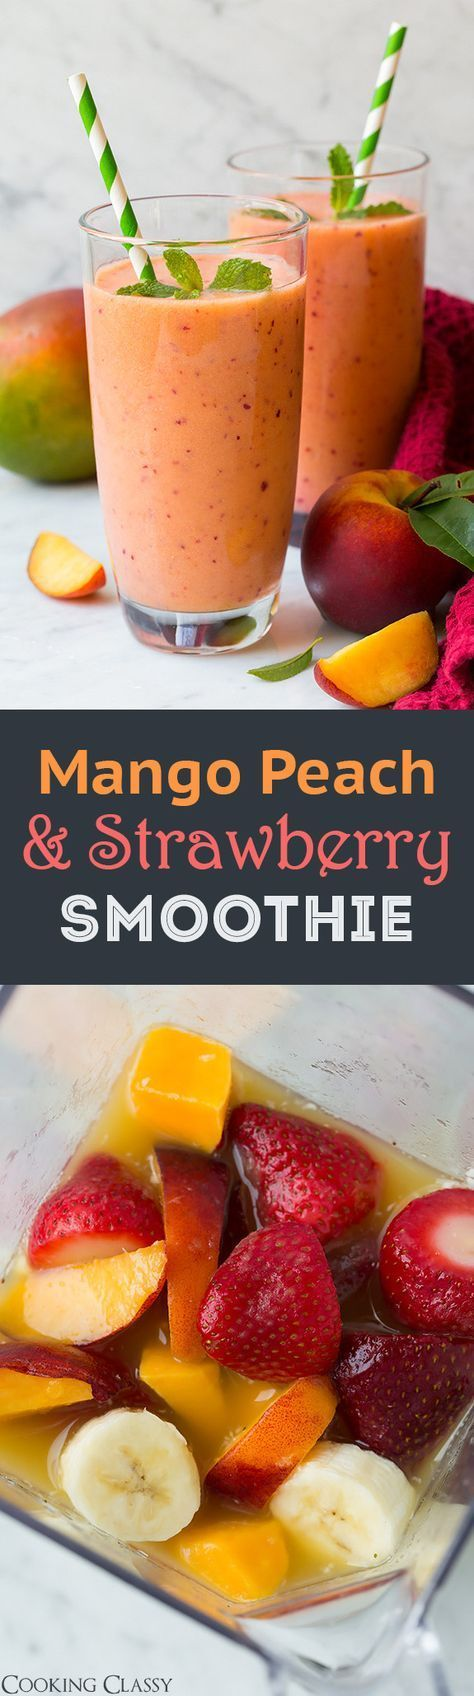 25+ best ideas about Peach mango smoothie on Pinterest ...